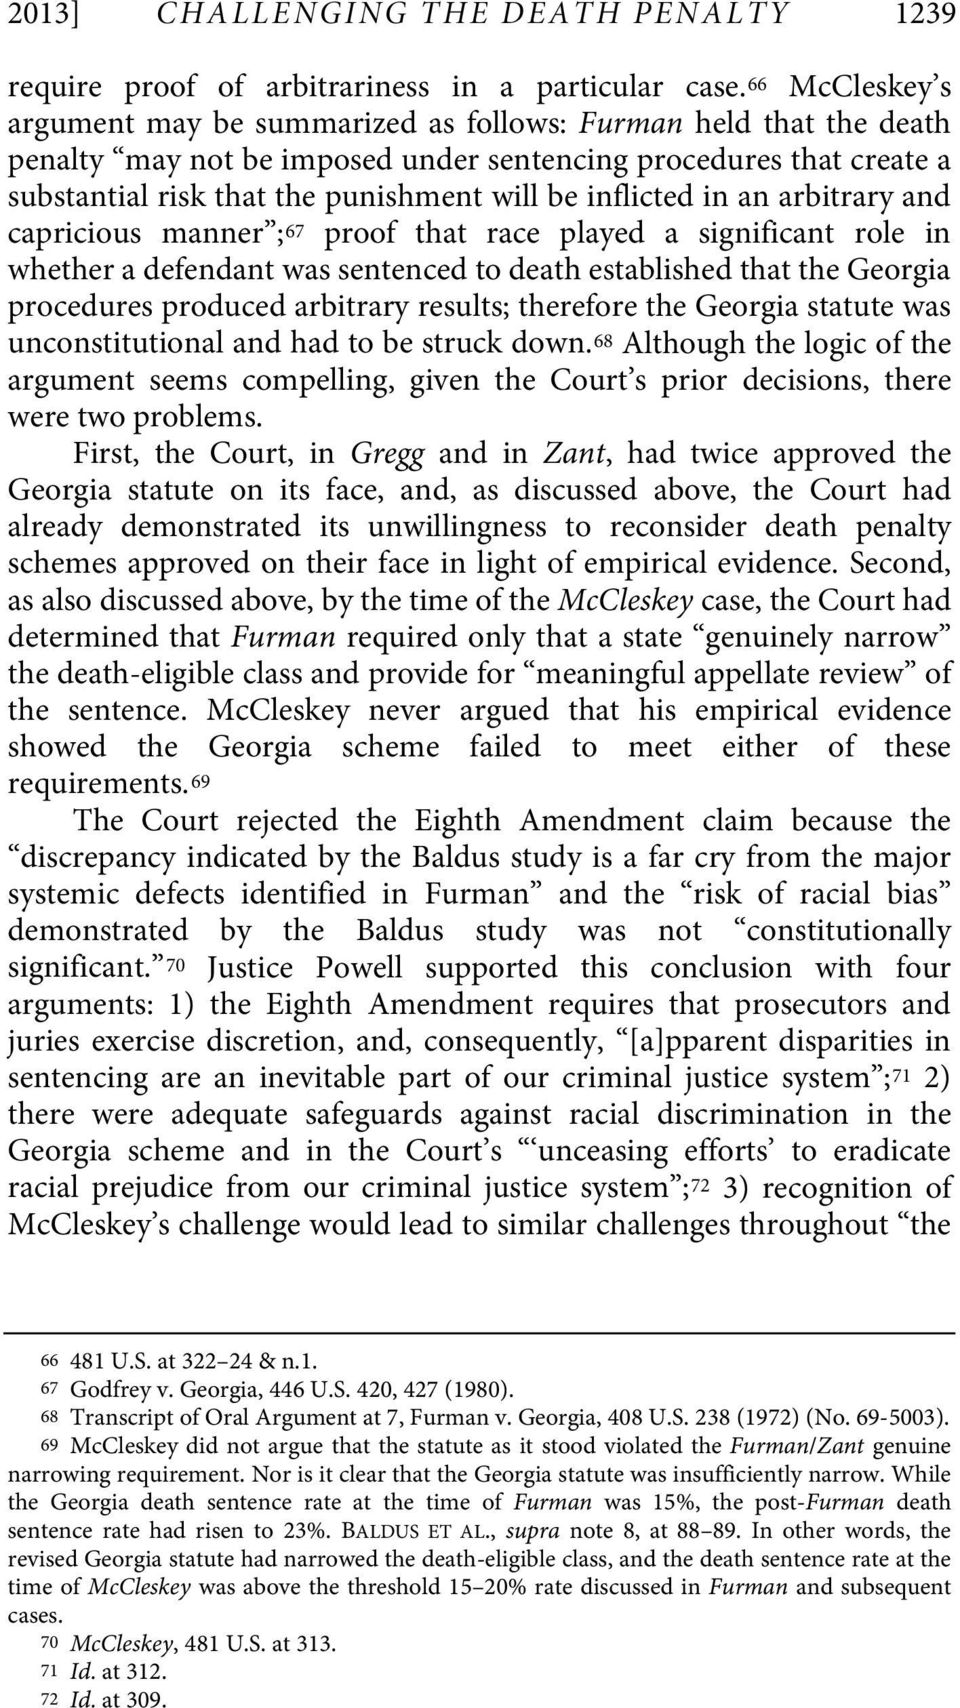 inflicted in an arbitrary and capricious manner ; 67 proof that race played a significant role in whether a defendant was sentenced to death established that the Georgia procedures produced arbitrary